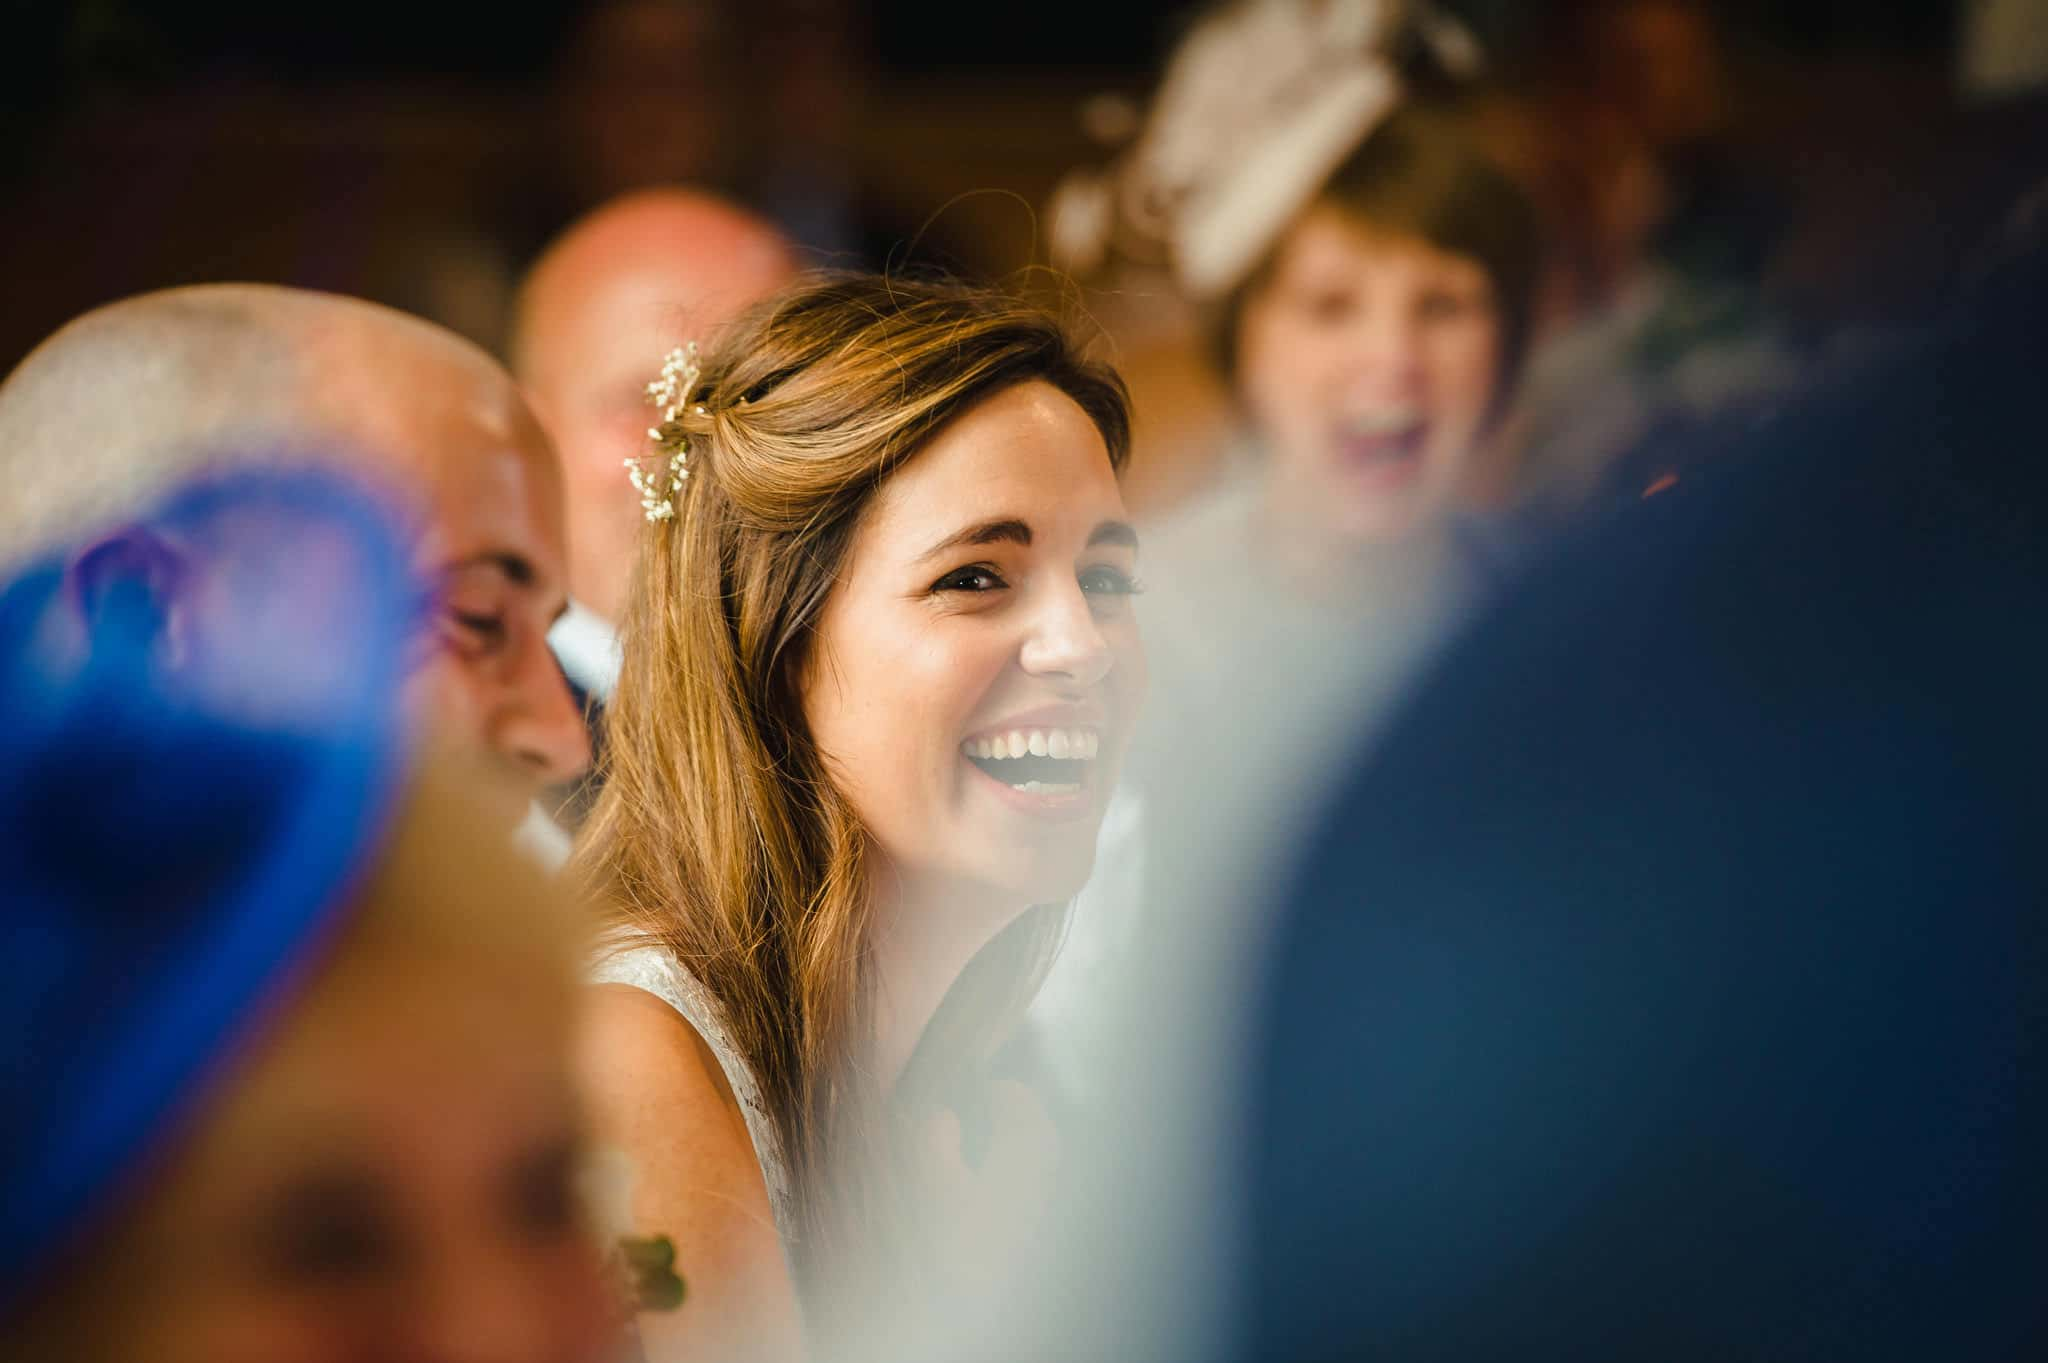 Wedding at Redhouse Barn in Stoke Prior, Worcestershire 133